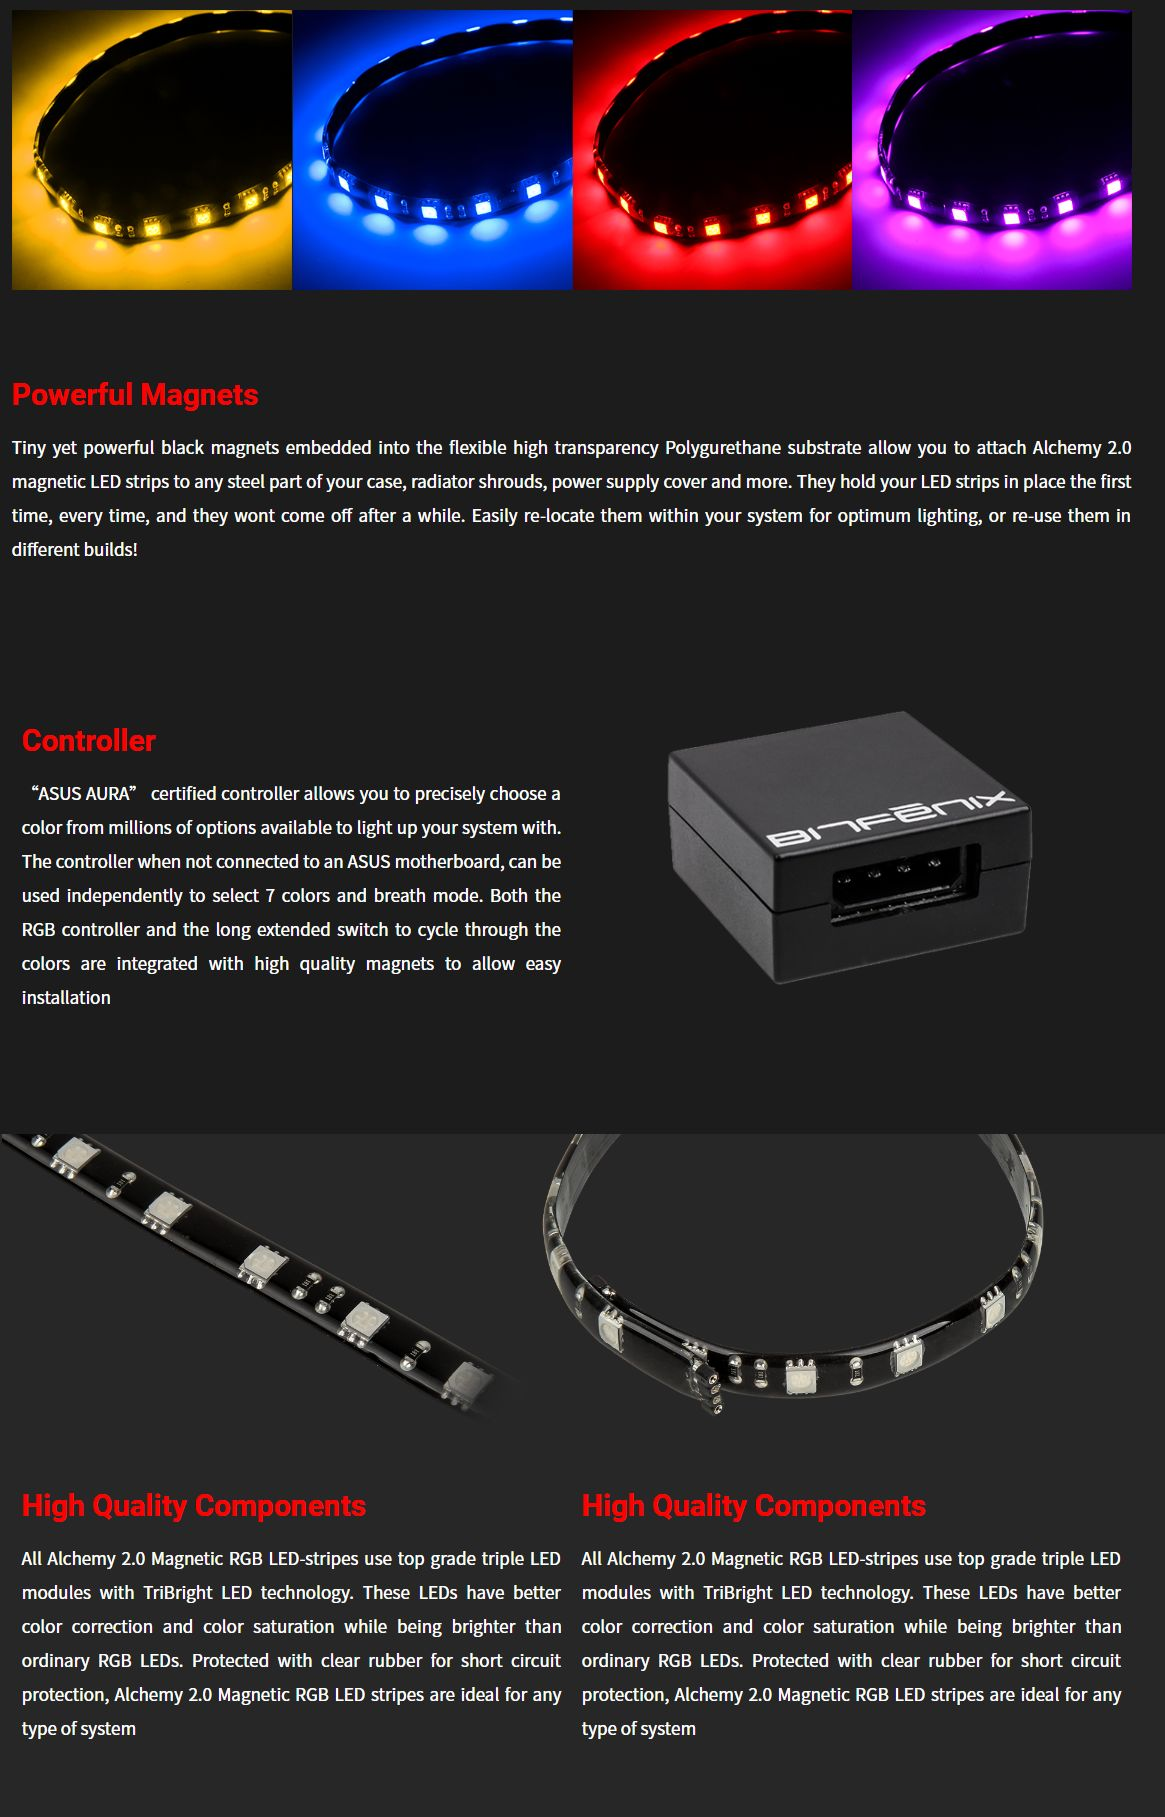 Bitfenix Alchemy 2 0 RGB Magnetic LED Strip and Controller - 600mm